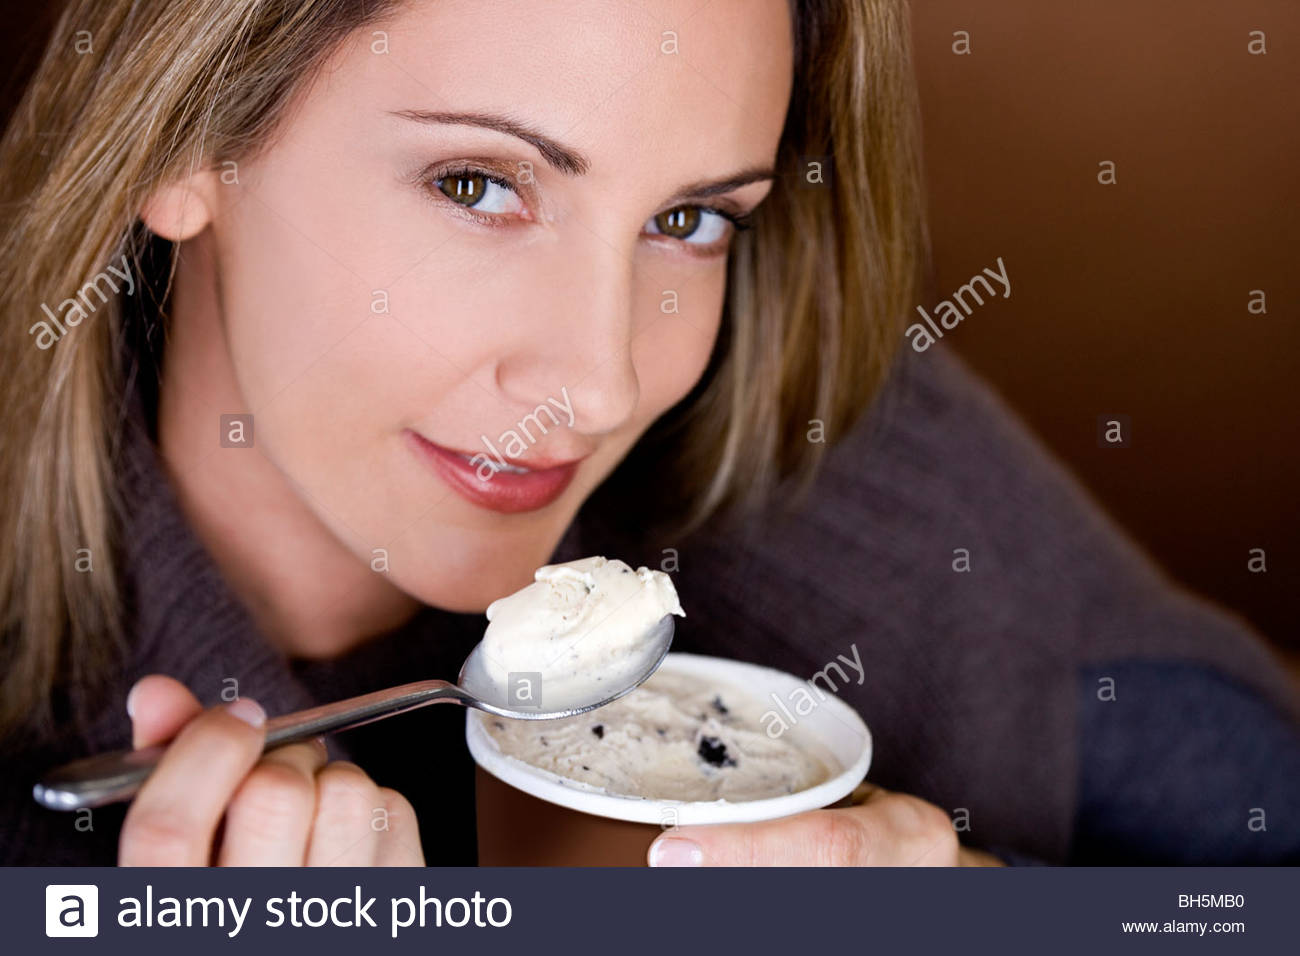 A mid adult woman eating ice cream, close-up - Stock Image